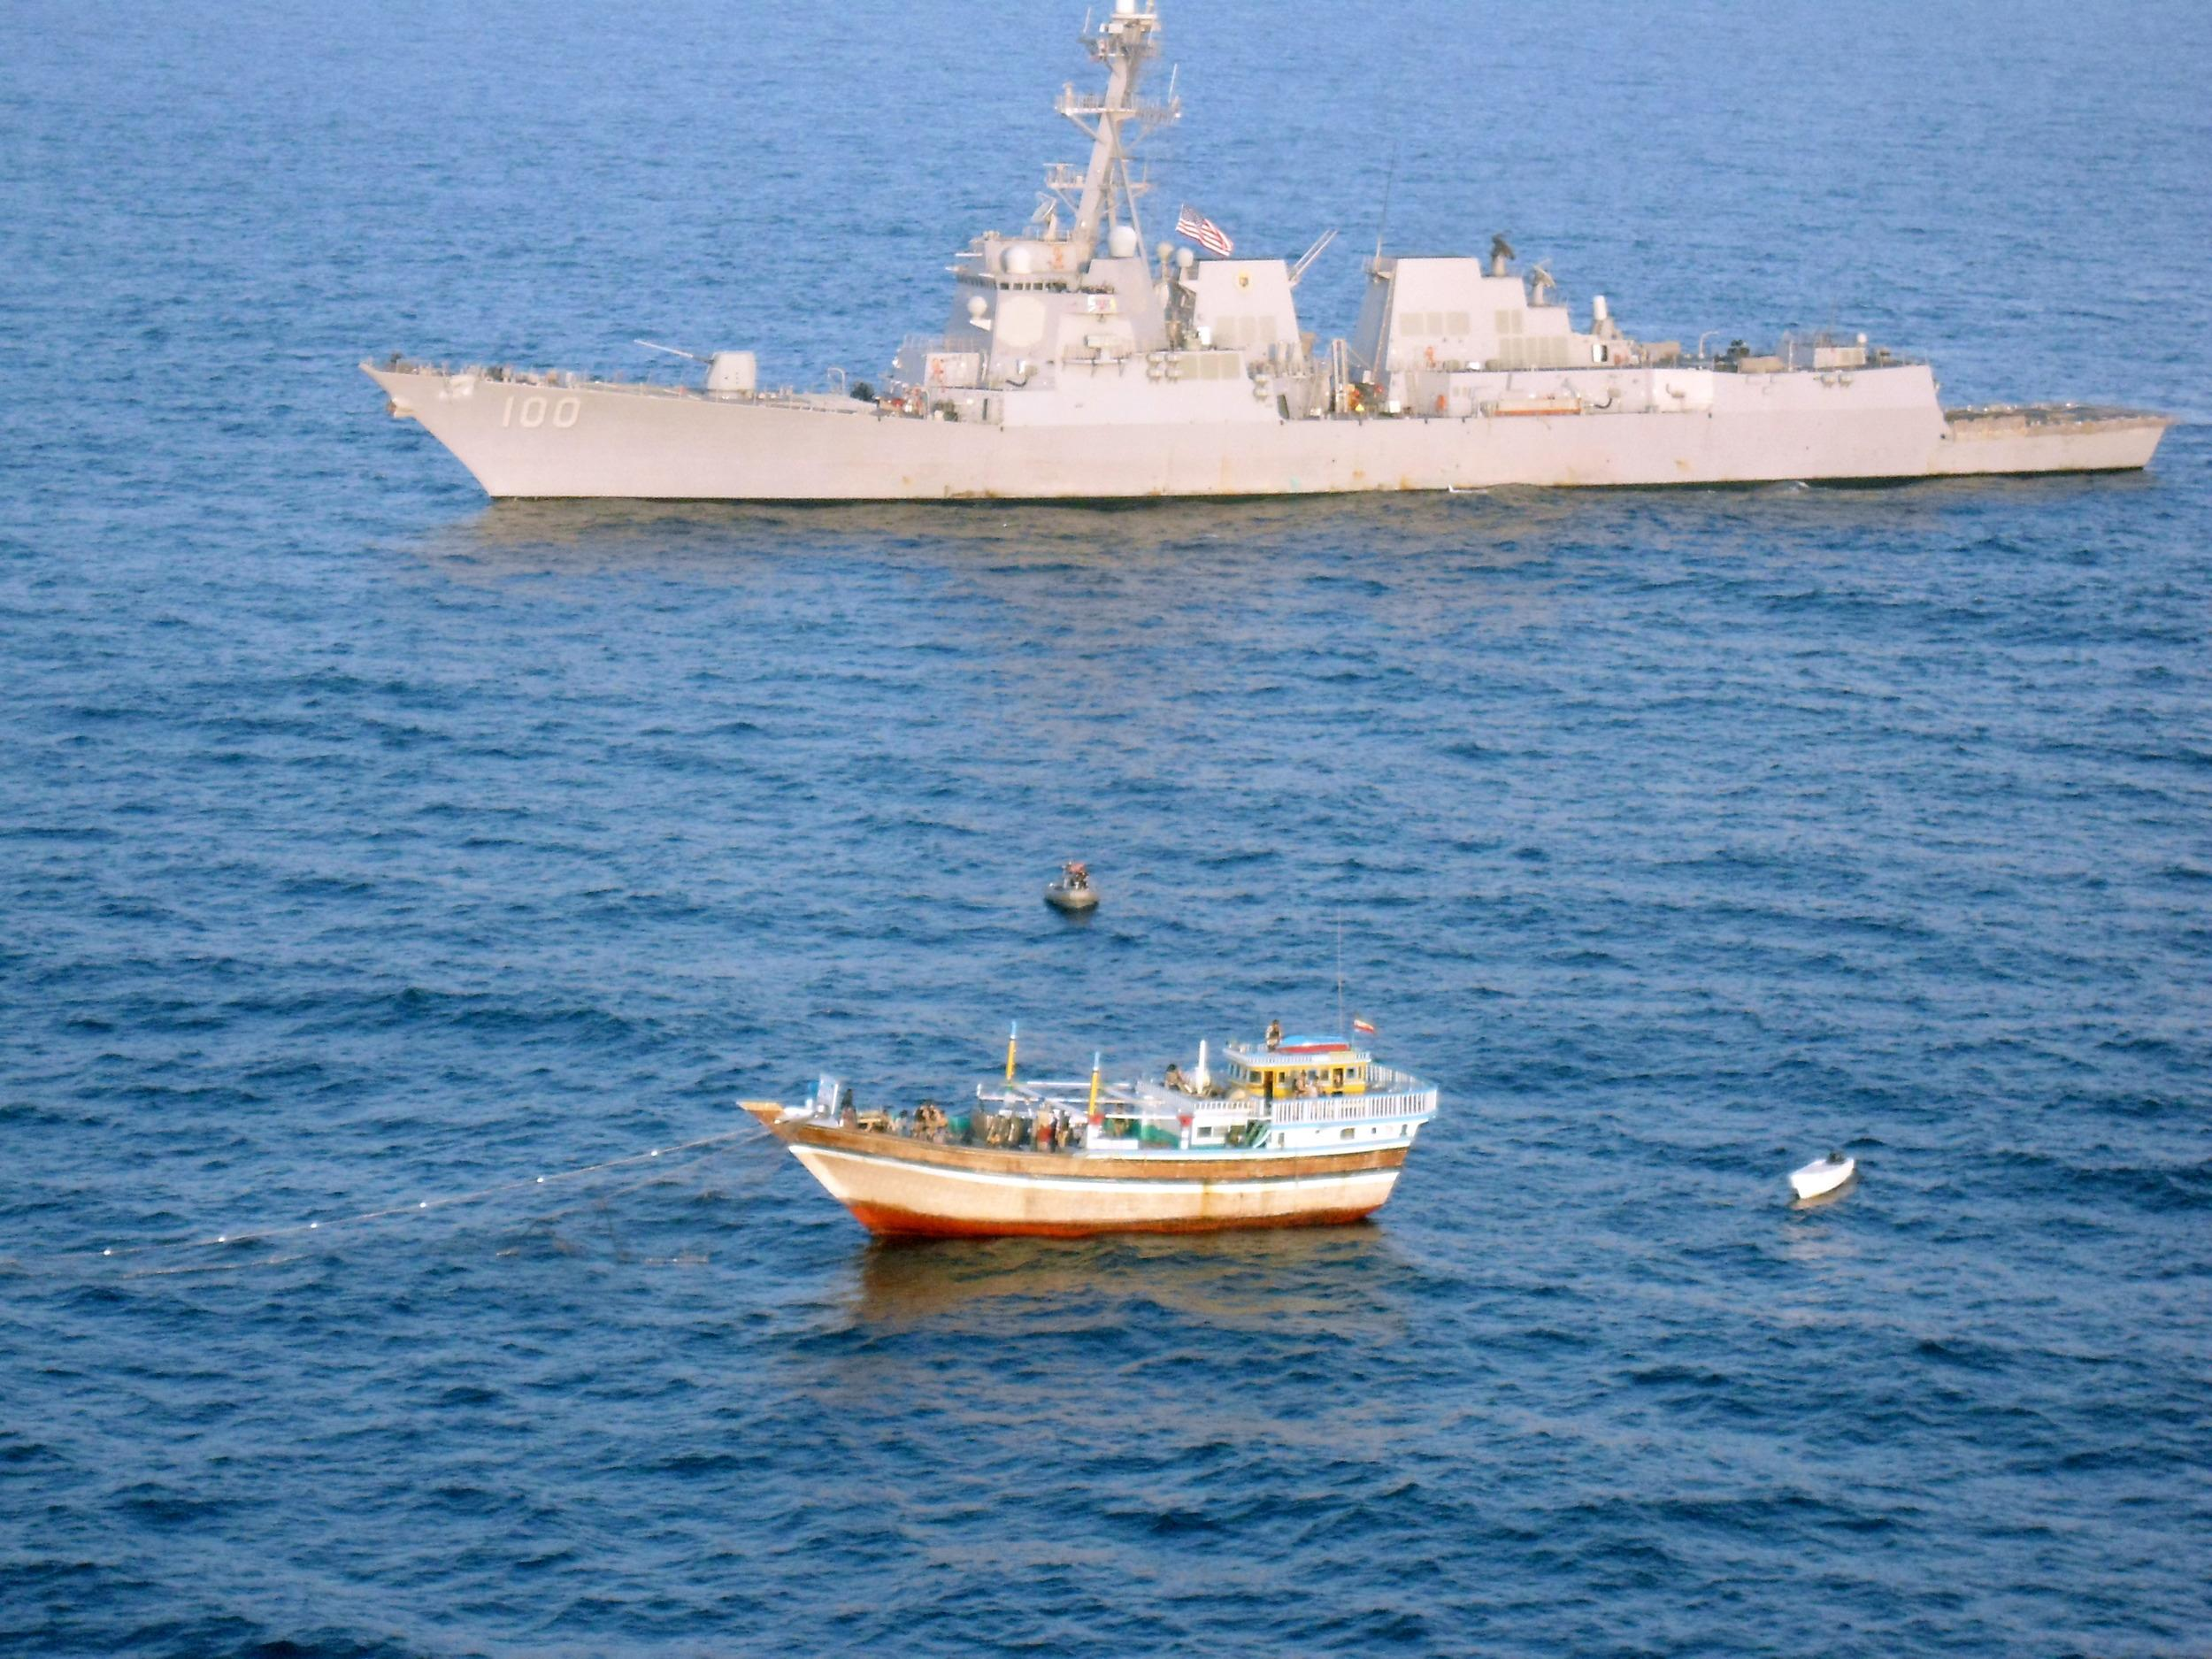 Image: The guided-missile destroyer USS Kidd redeployed to the Strait of Malacca in the search for the missing airliner